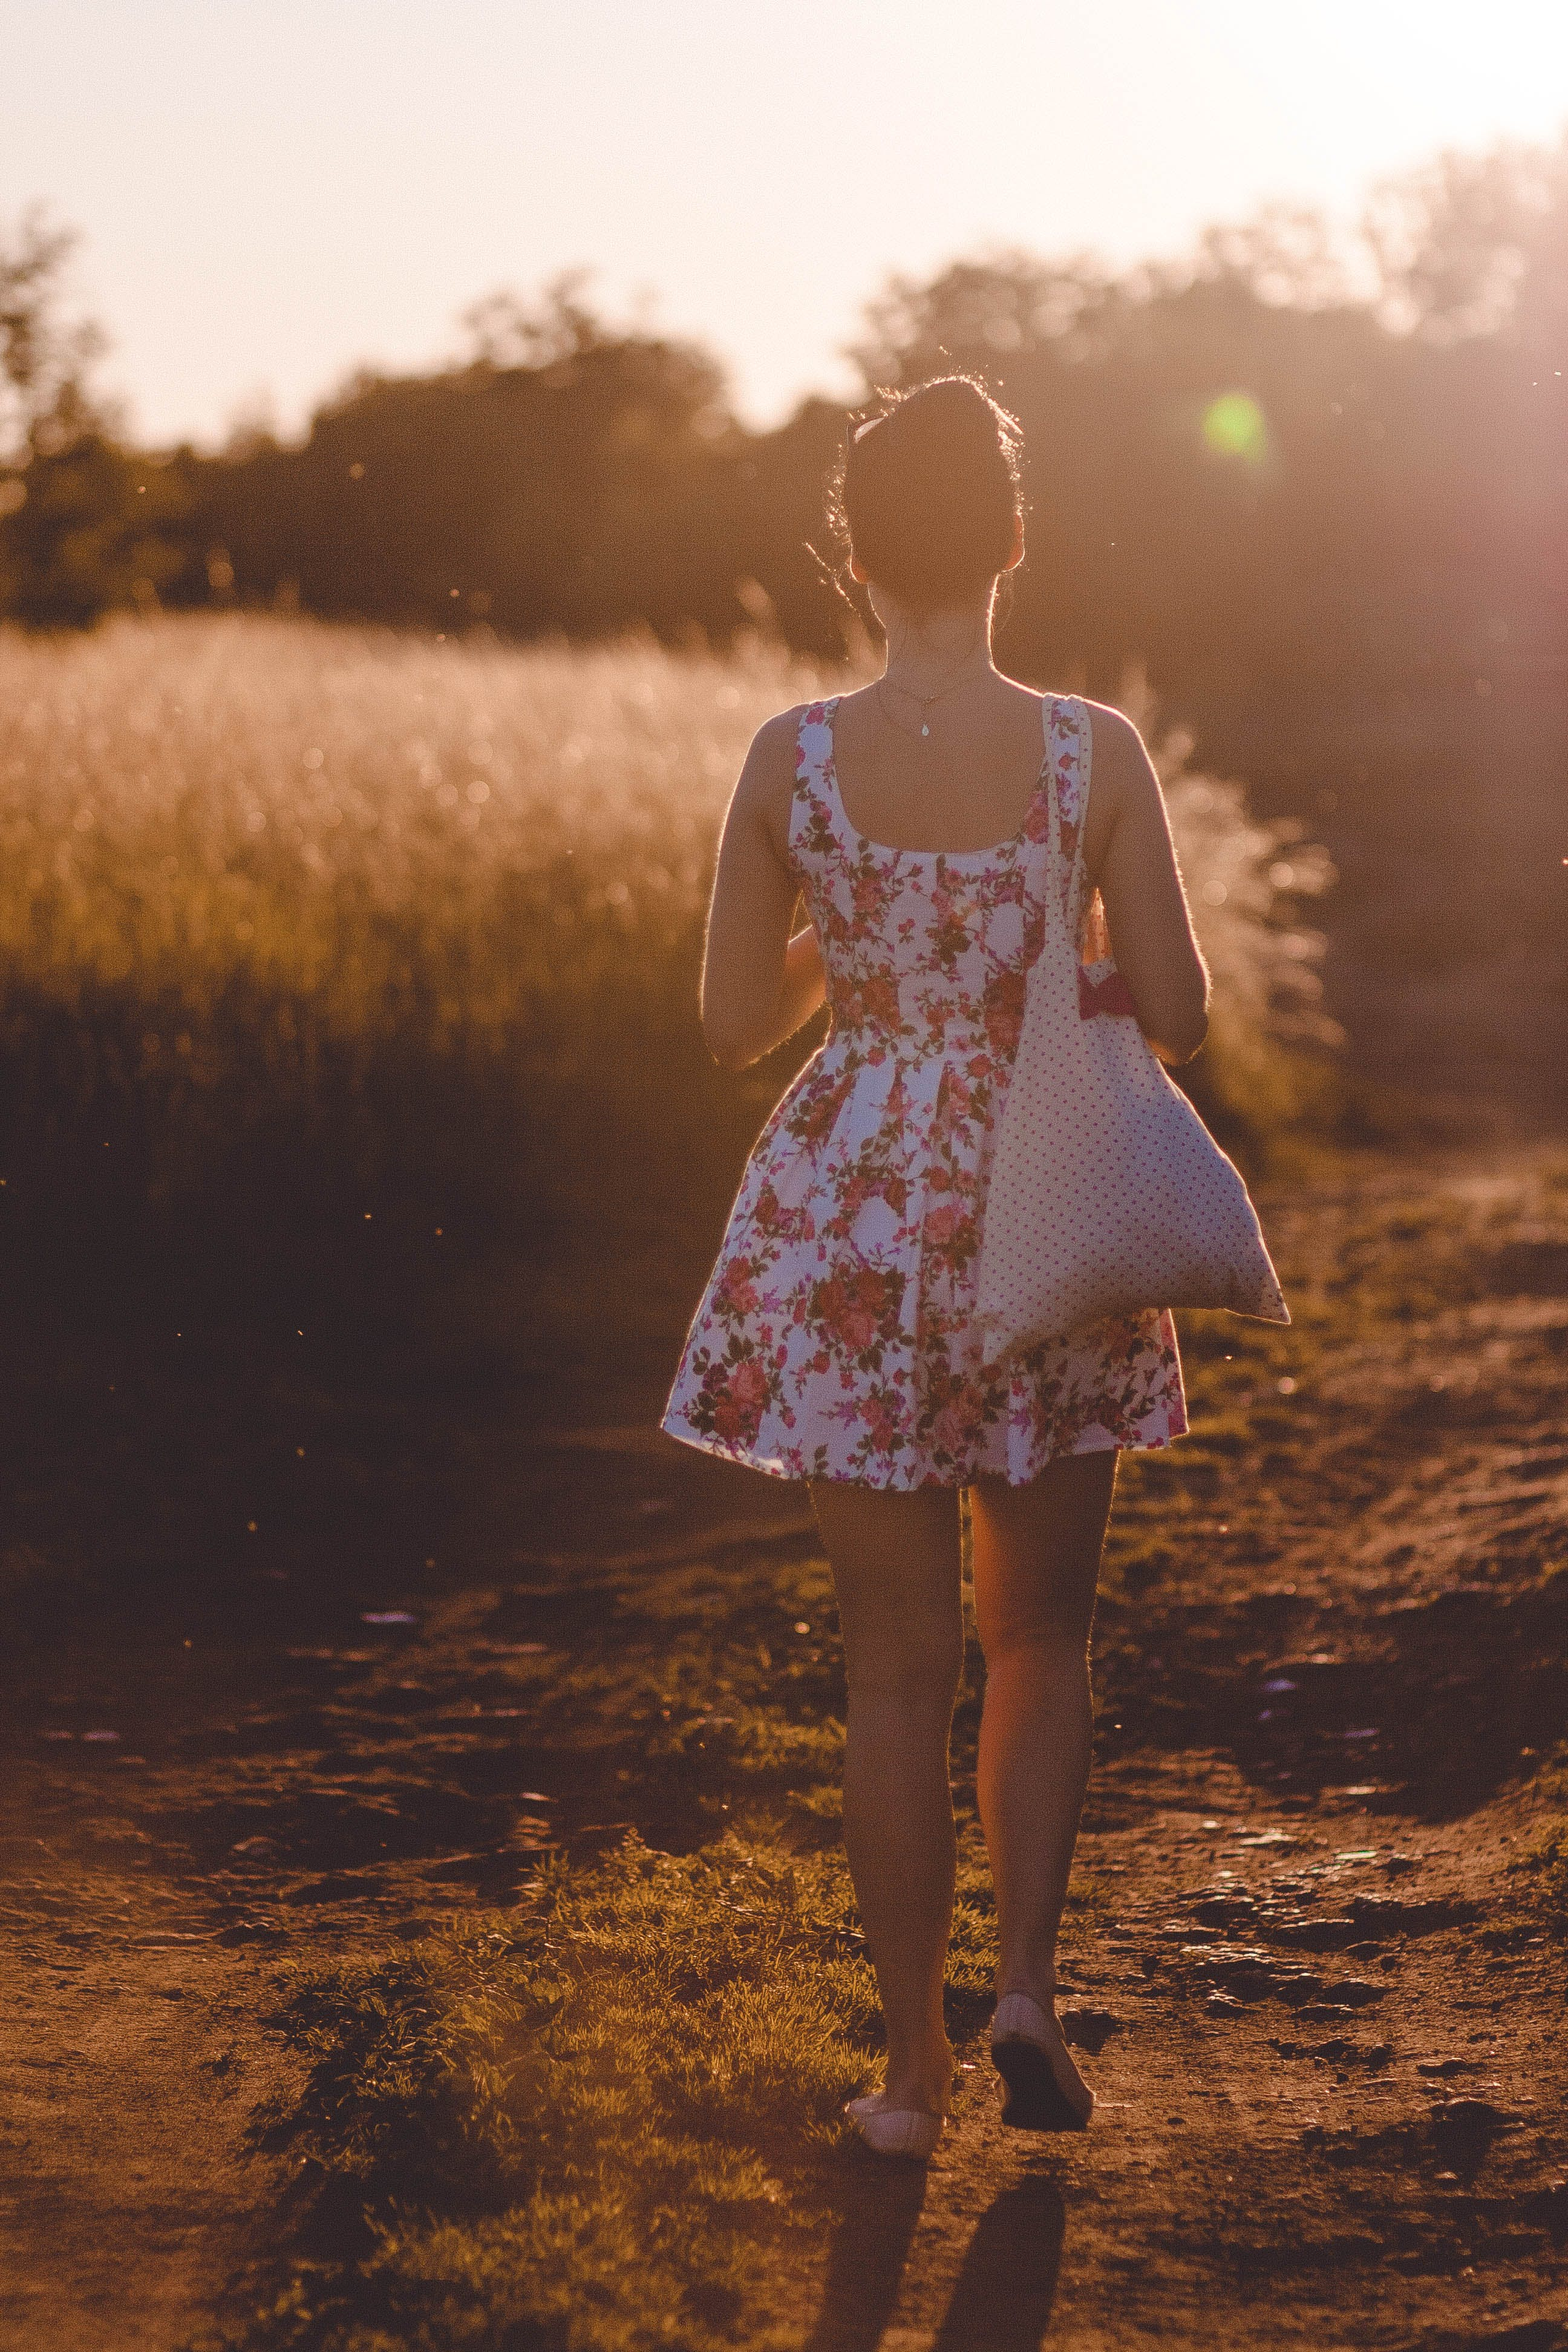 Woman in White and Pink Floral Sleeveless Dress Walking on Brown Road during Sunlight